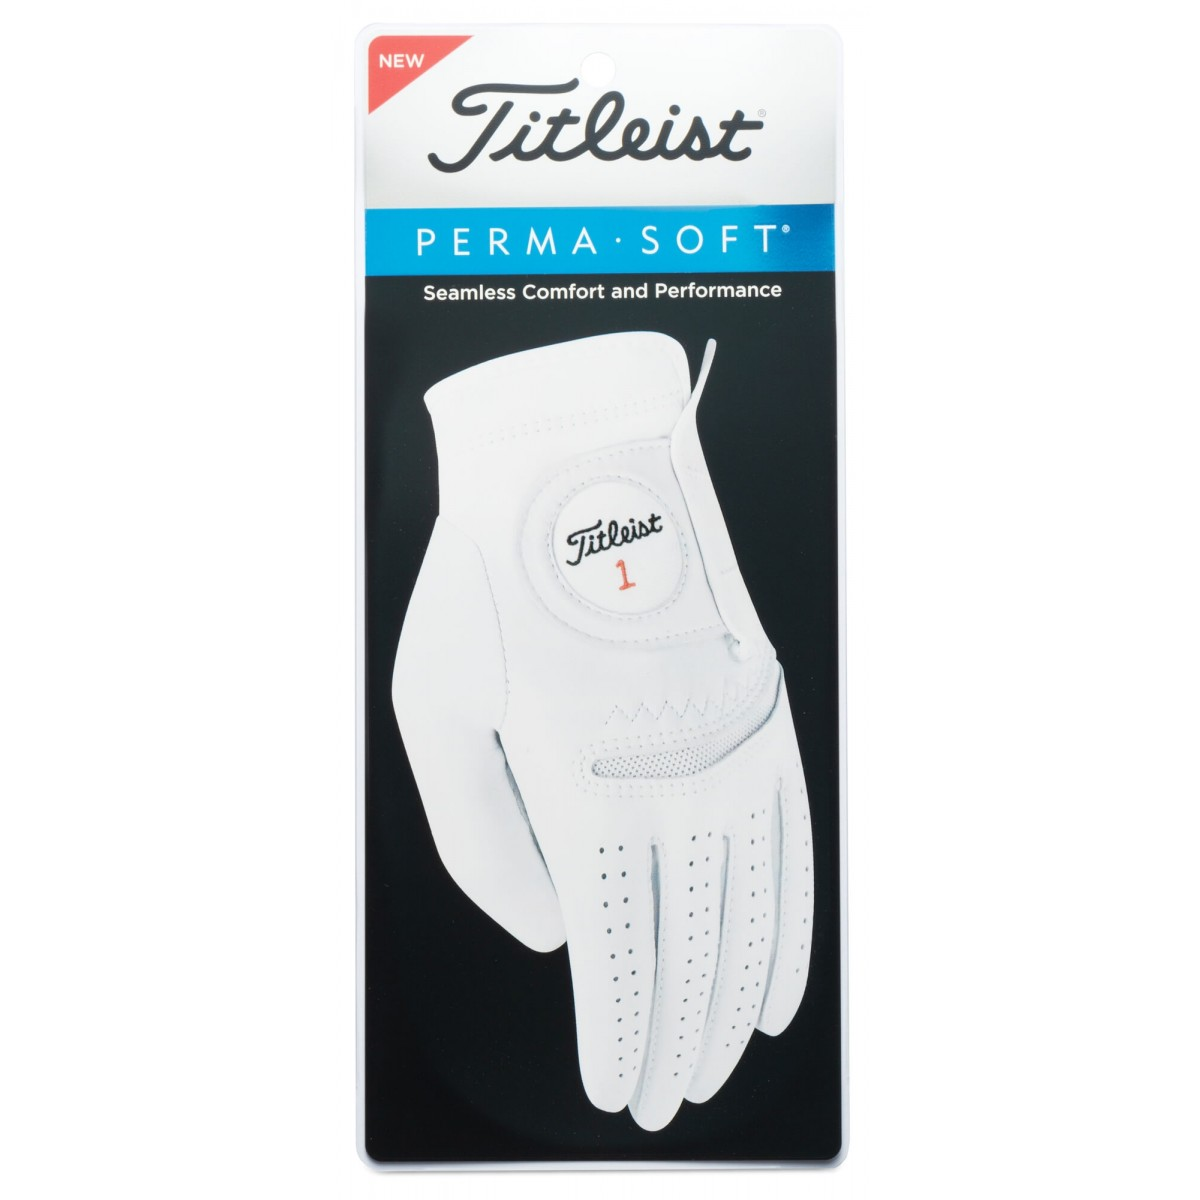 Titleist 2020 Perma-Soft Golf Glove - Left Hand Regular